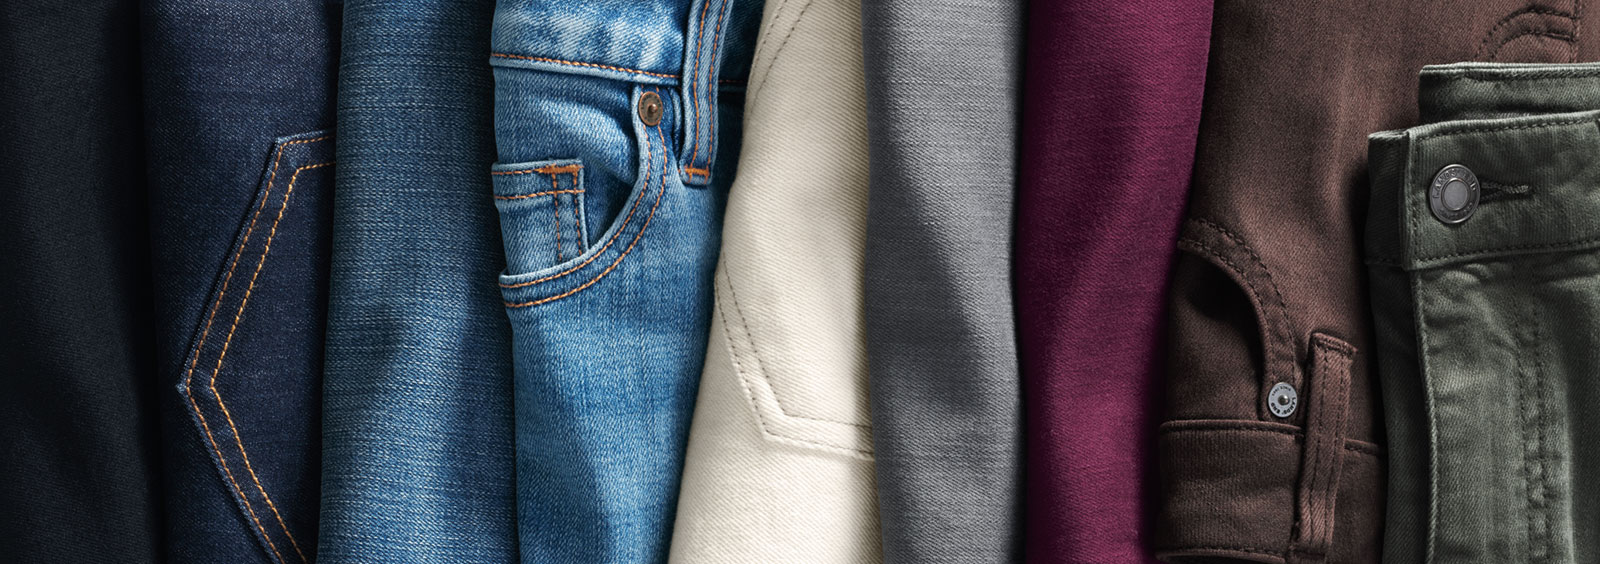 High-Rise Jeans for Petite, Tall or Plus Size Women